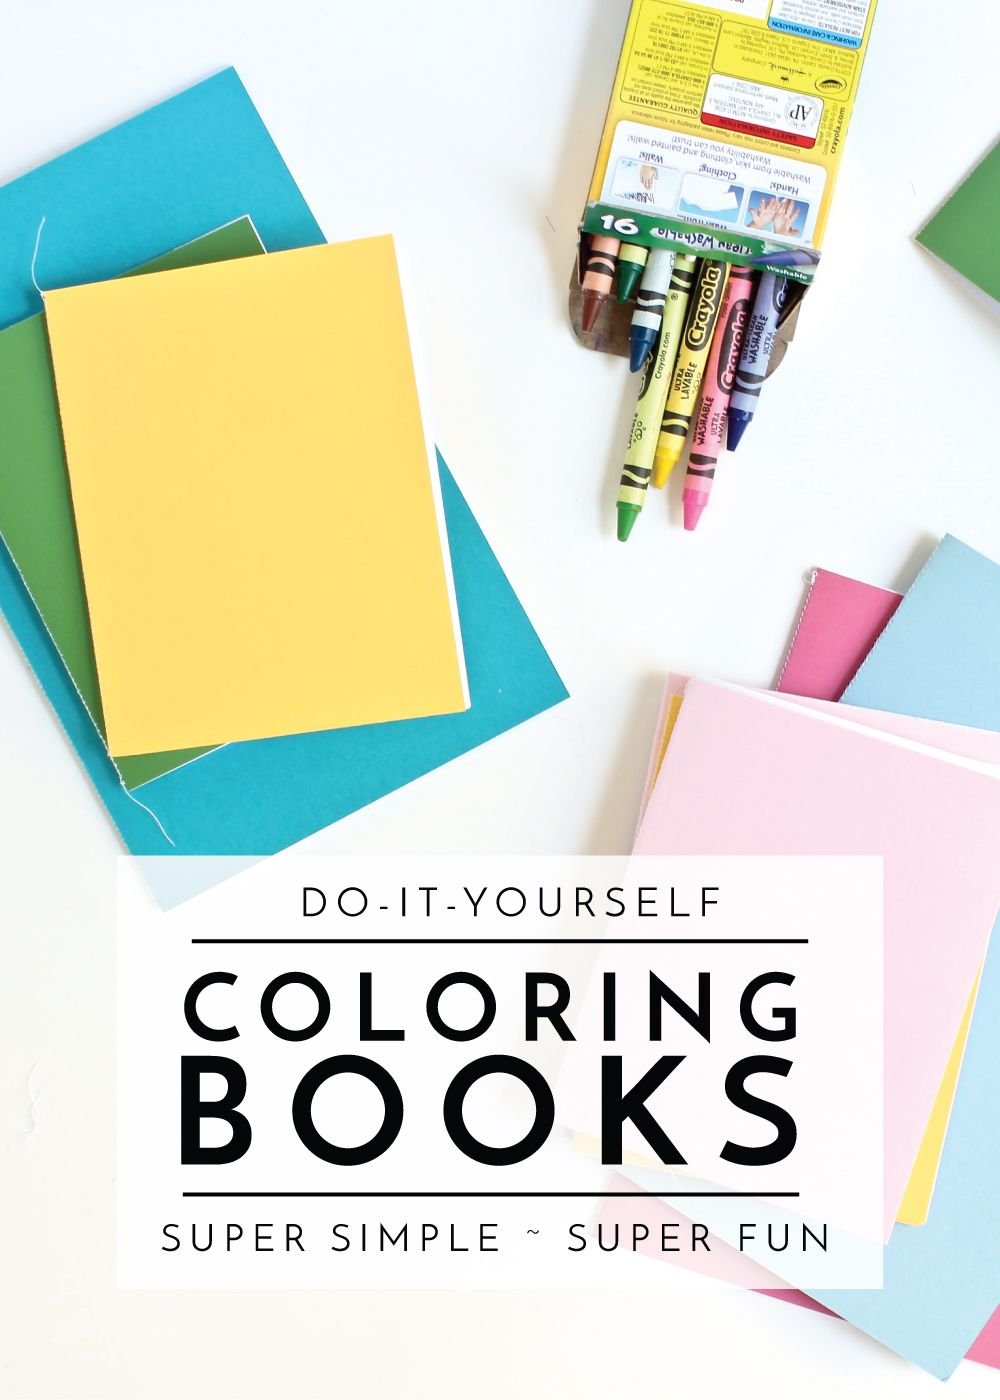 Diy Coloring Books Diy Coloring Books Personalized Coloring Book Coloring Books